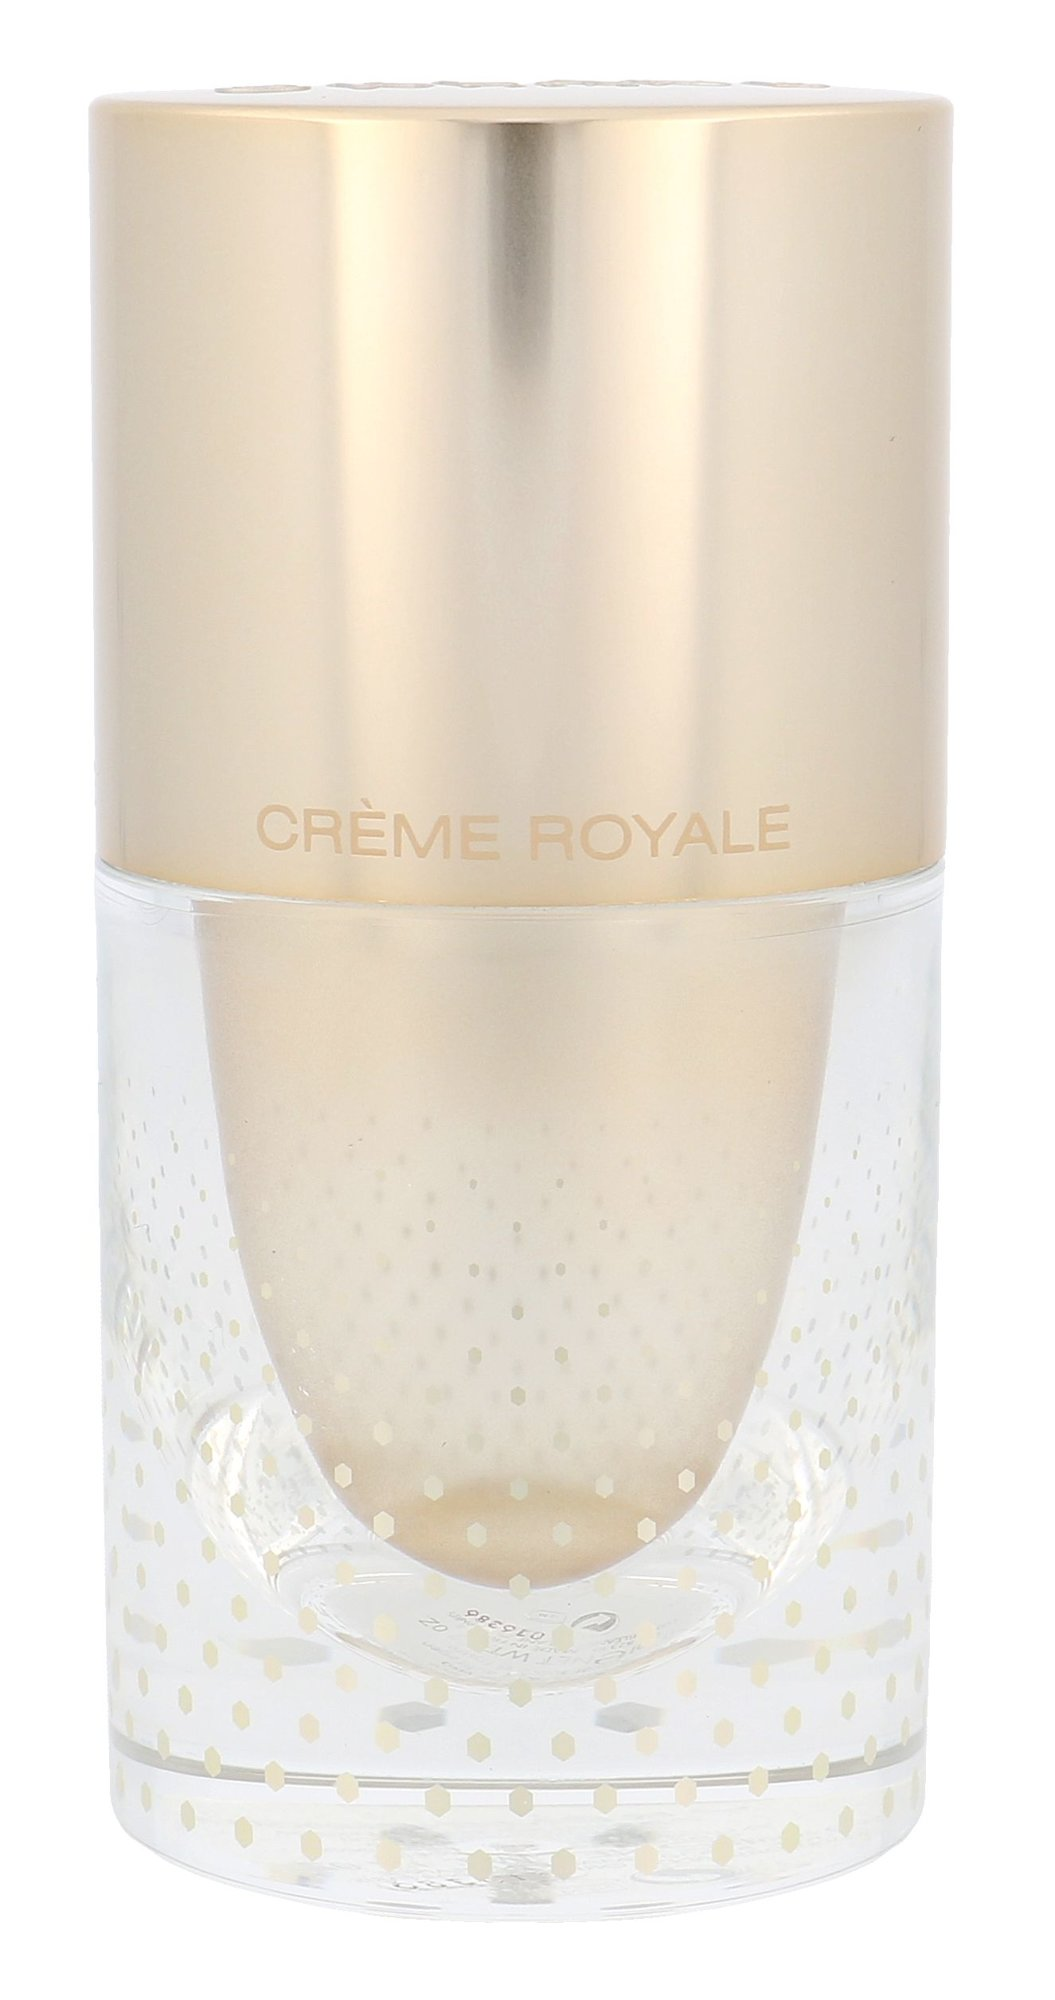 Orlane Creme Royale Cosmetic 50ml